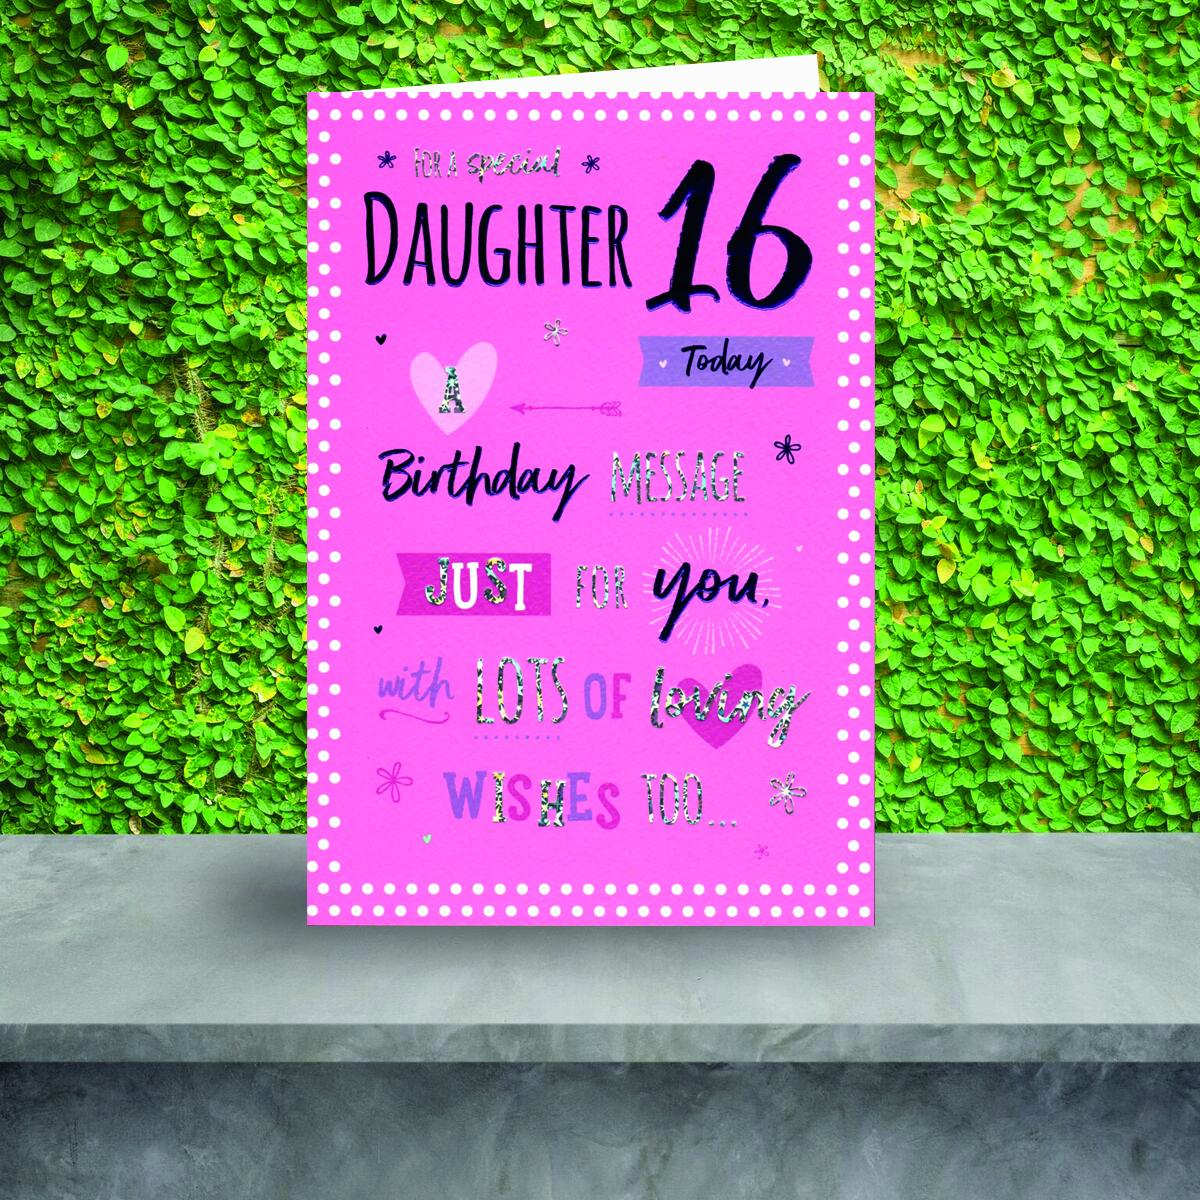 Daughter Age 16 Birthday Card Sitting On A Display Shelf